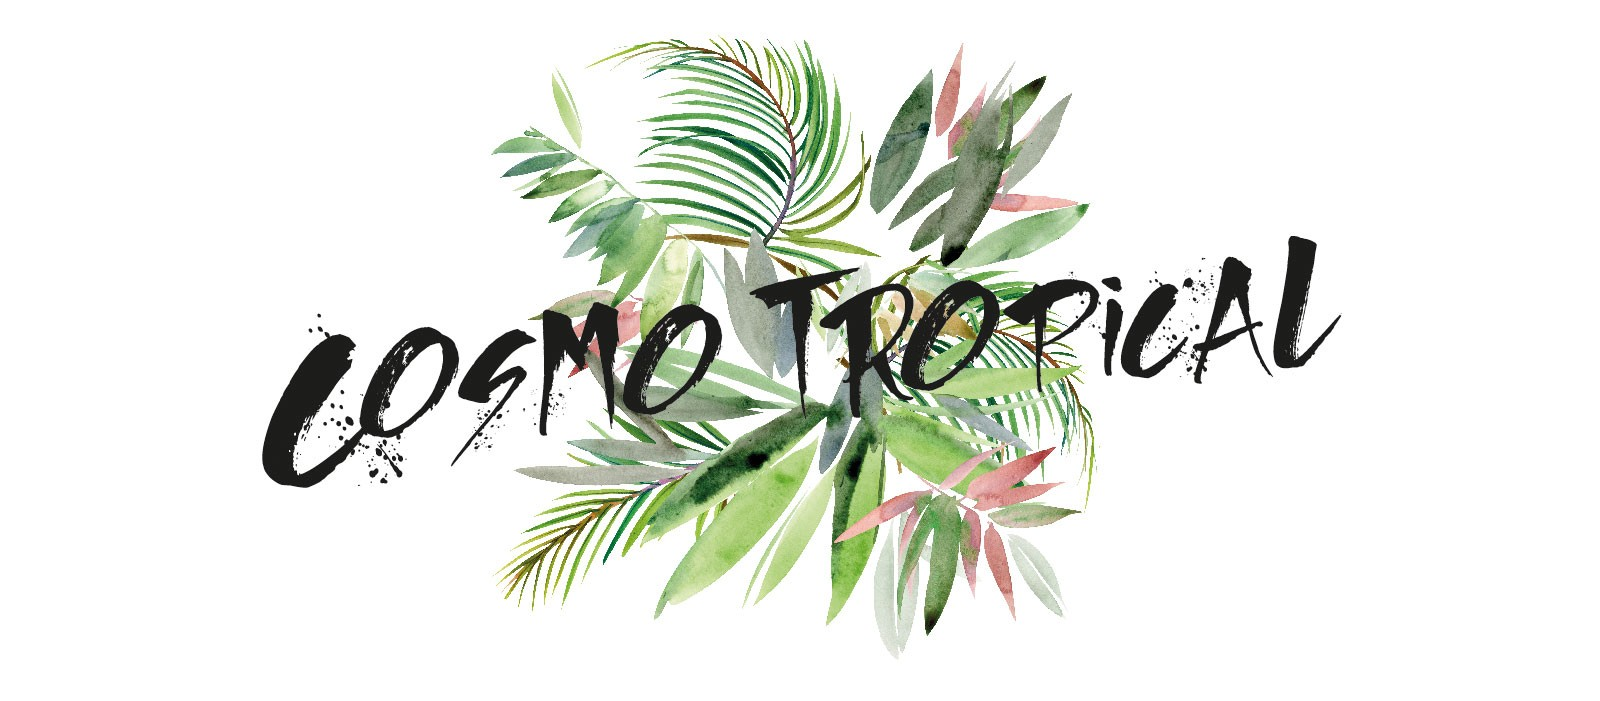 03_Cosmo-Tropical